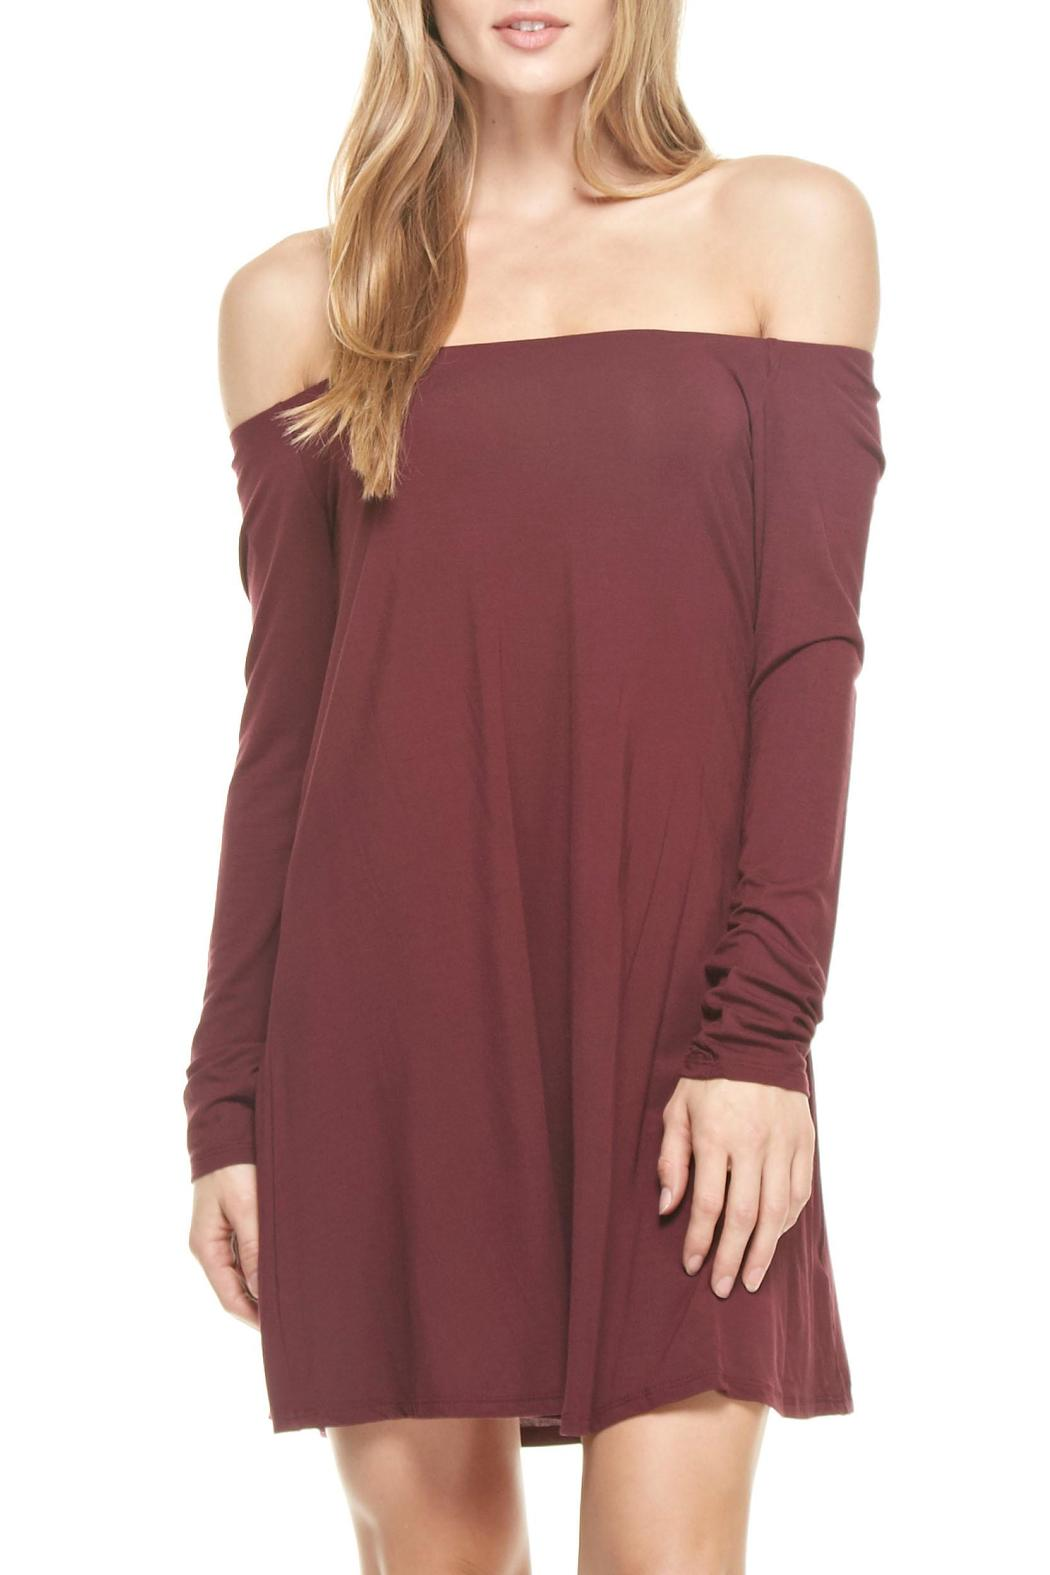 mittoshop burgandy off shoulder dress from california by apr